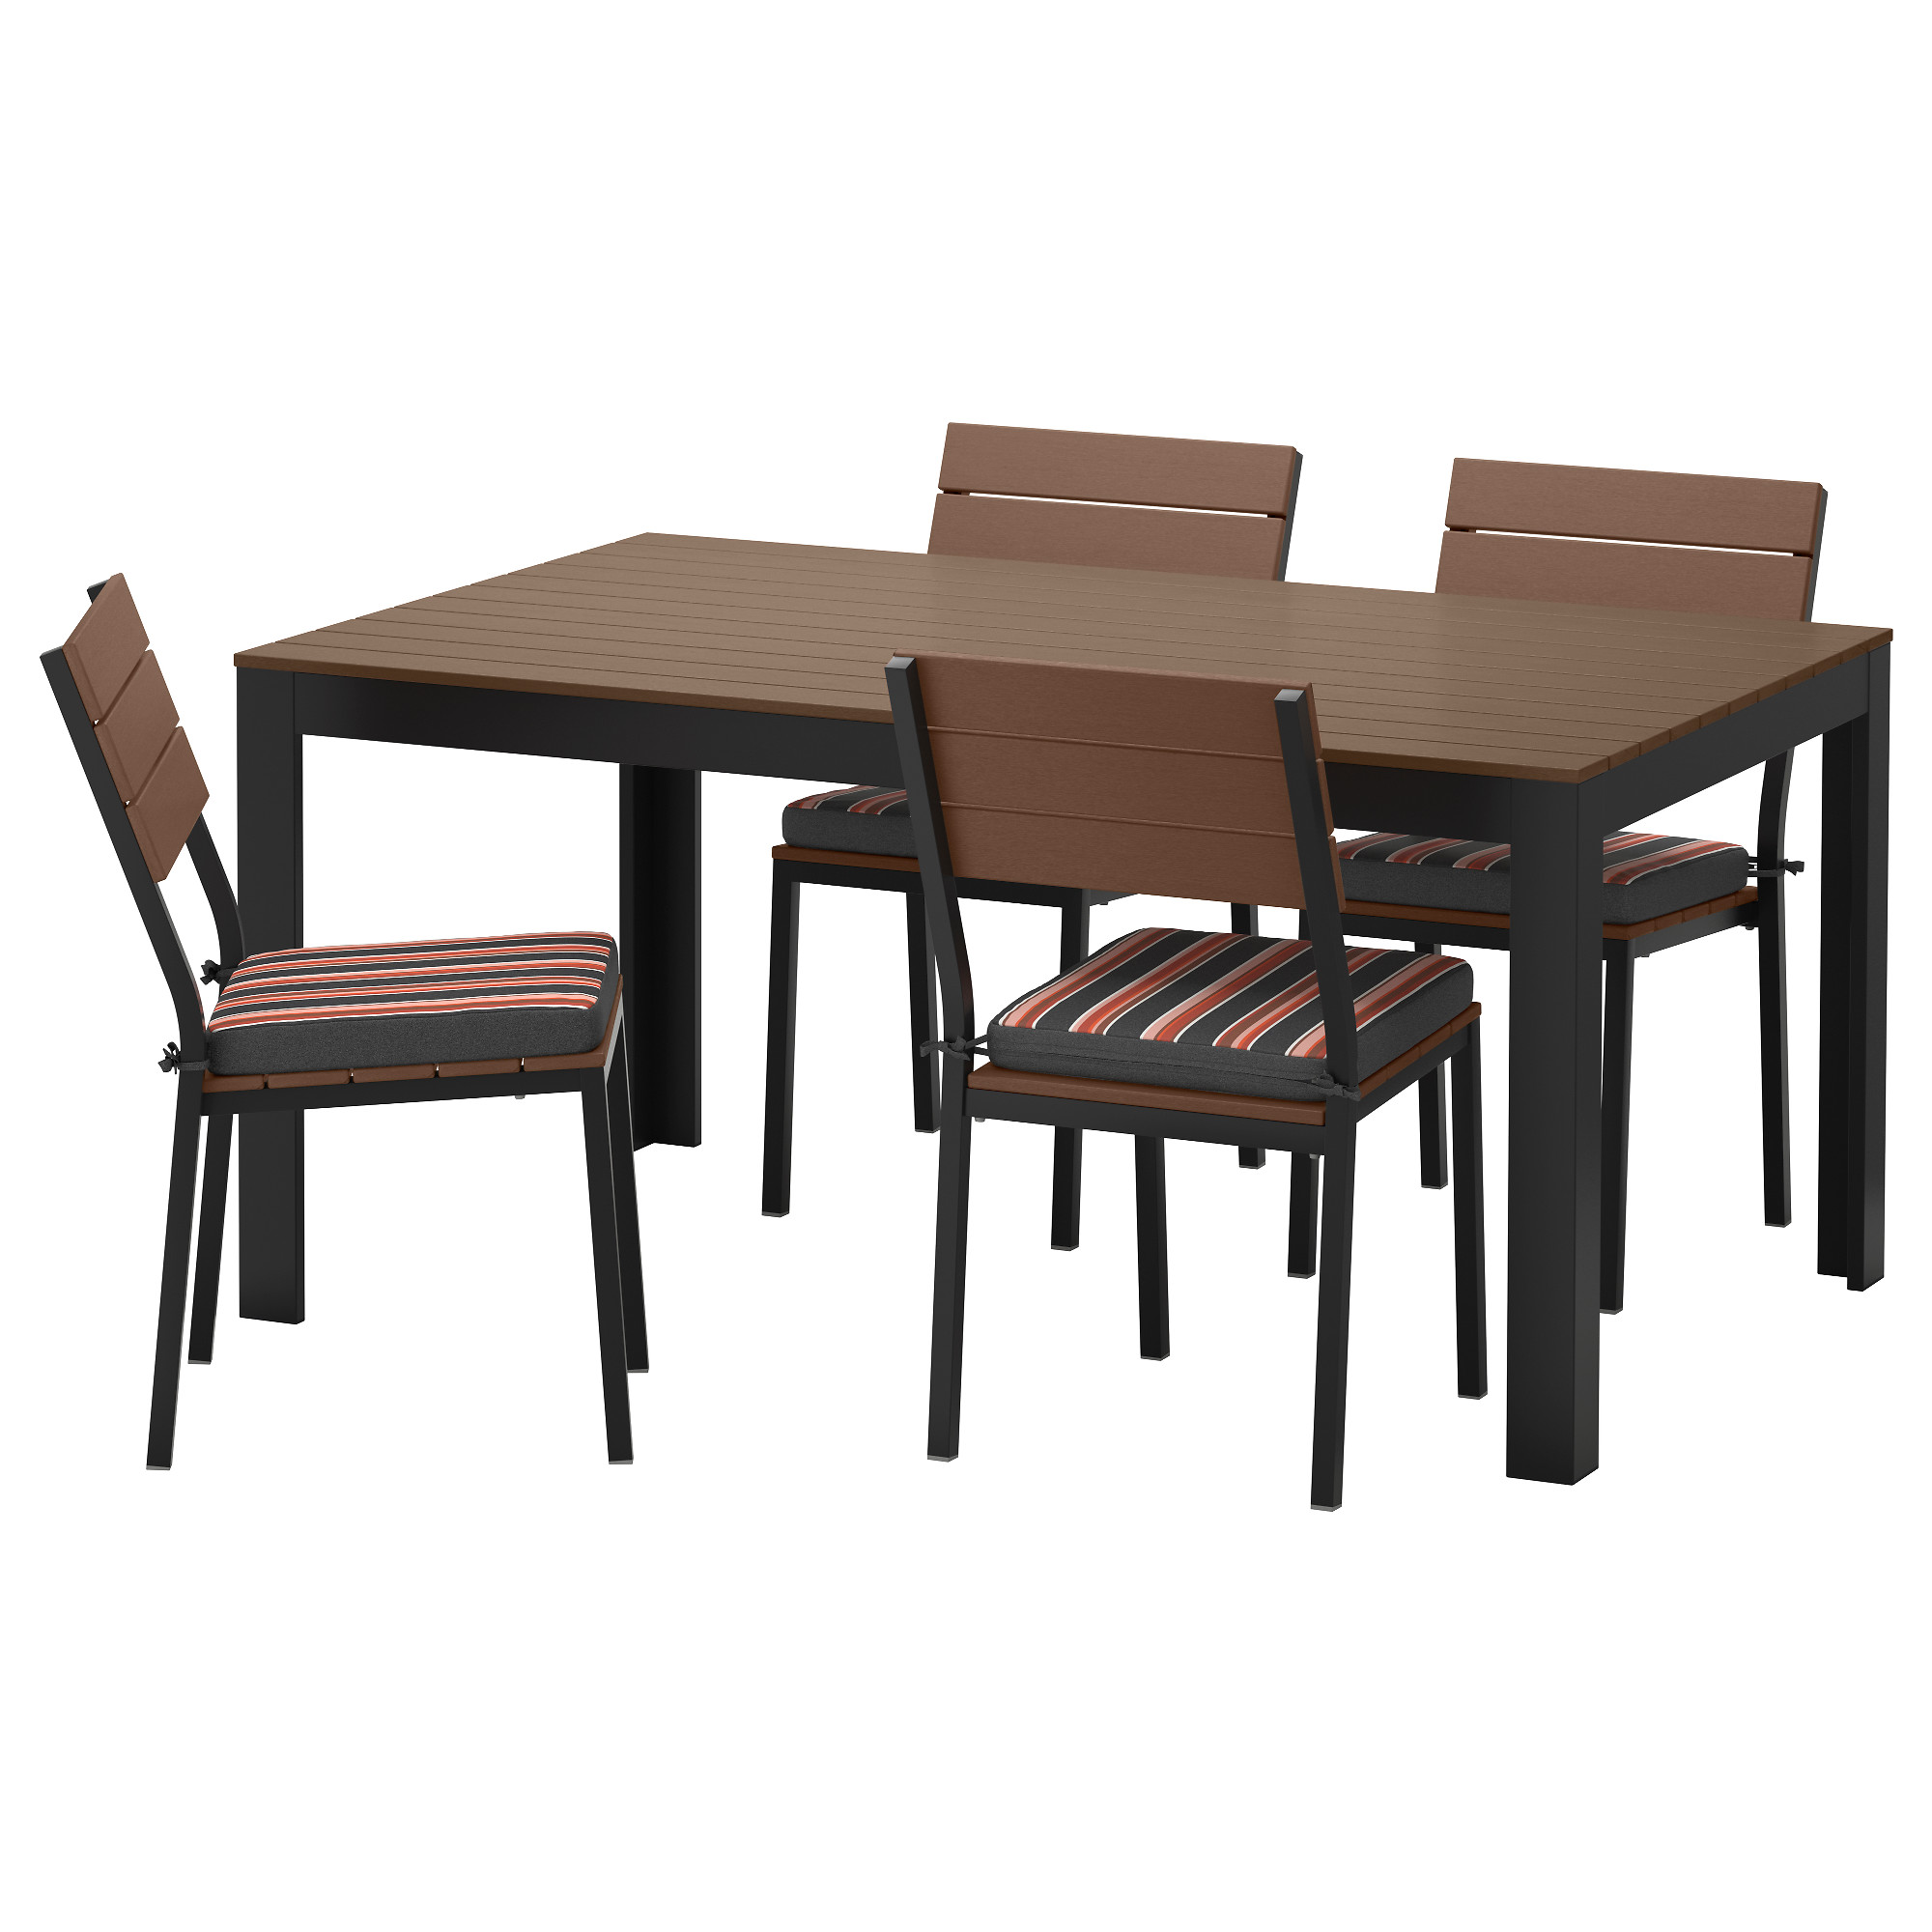 Outdoor wood dining table - Falster Table And 4 Chairs Outdoor Black Brown Eker N Black